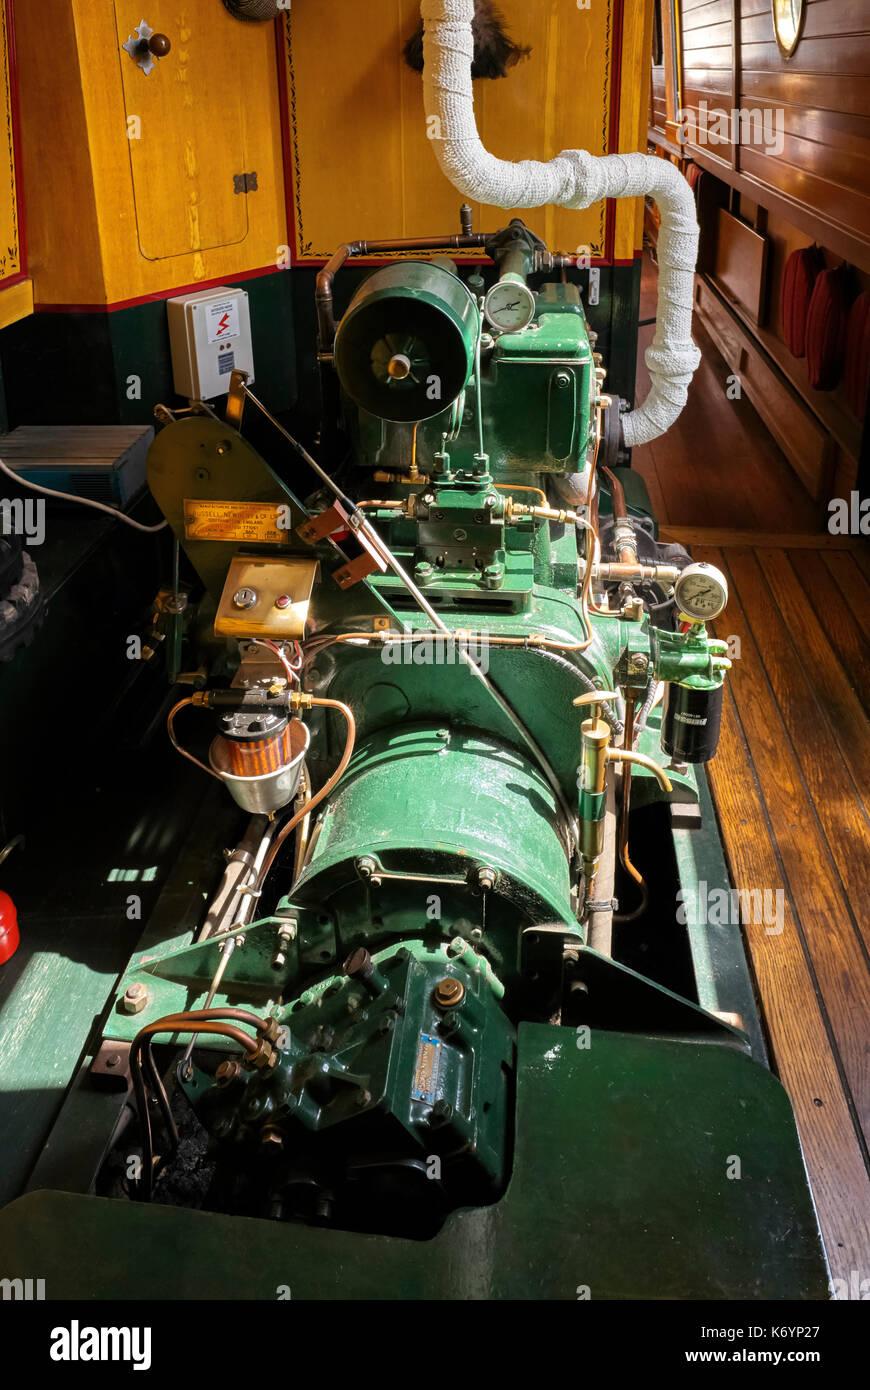 Russell Newbery DM2 engine installed in a narrowboat - Stock Image